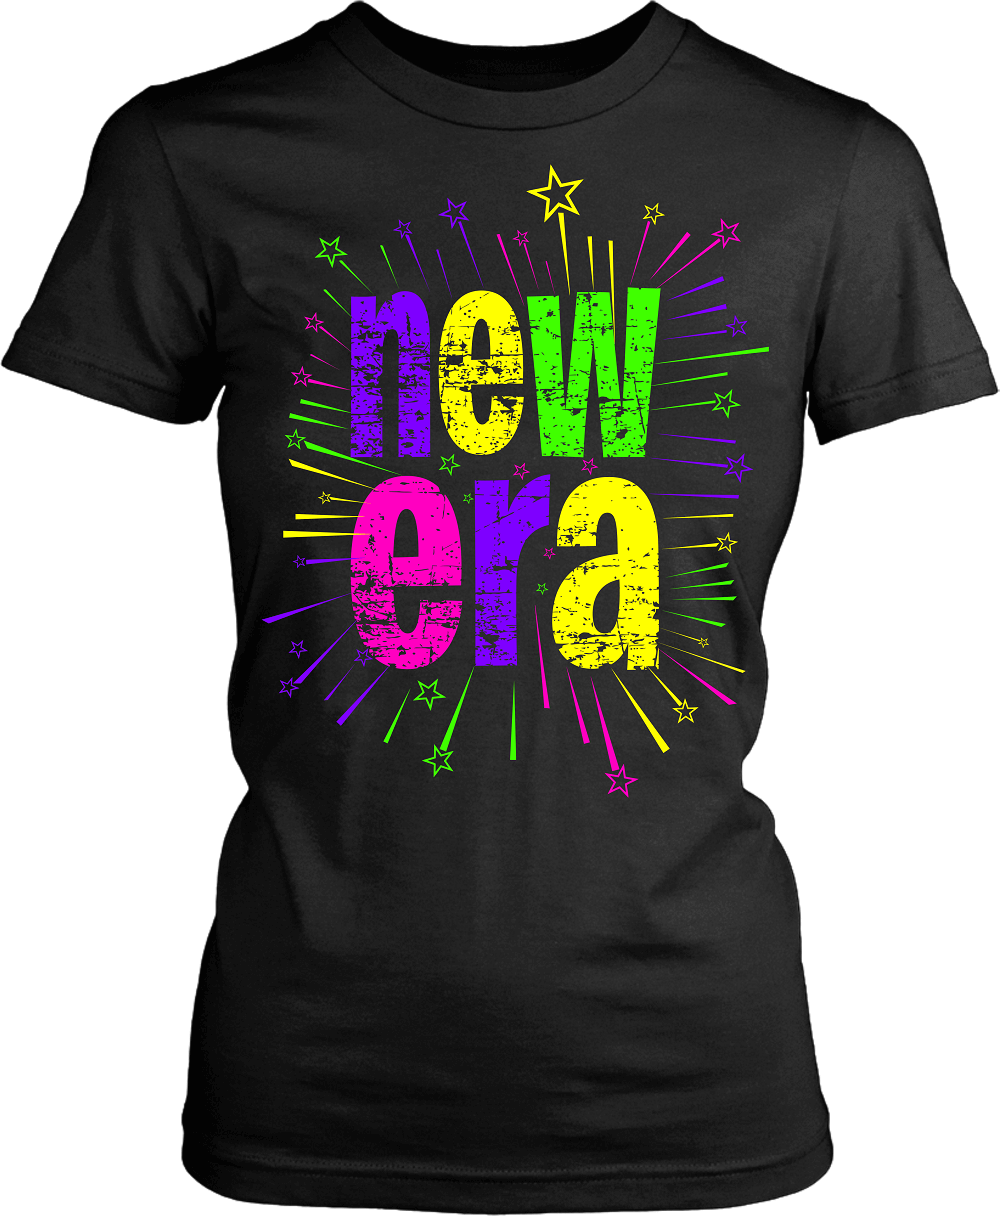 "T-shirt Mock-up with bold design ""new Era"" on the front  colorful available from the Xpert Apparel Store"